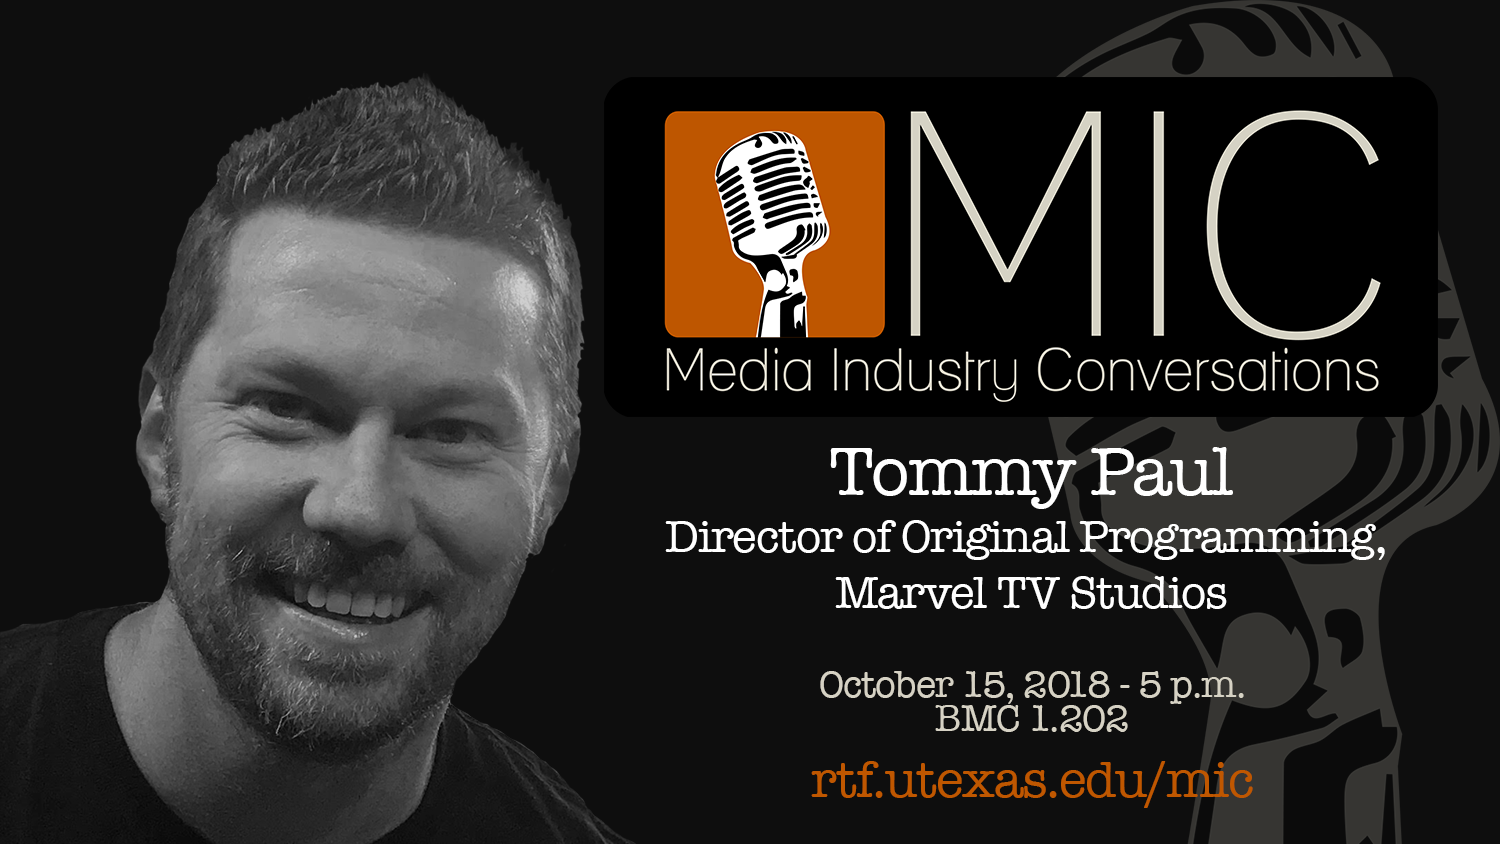 tommy_paul_MIC_talk_october_15_2018_5pm_BMC_1.202